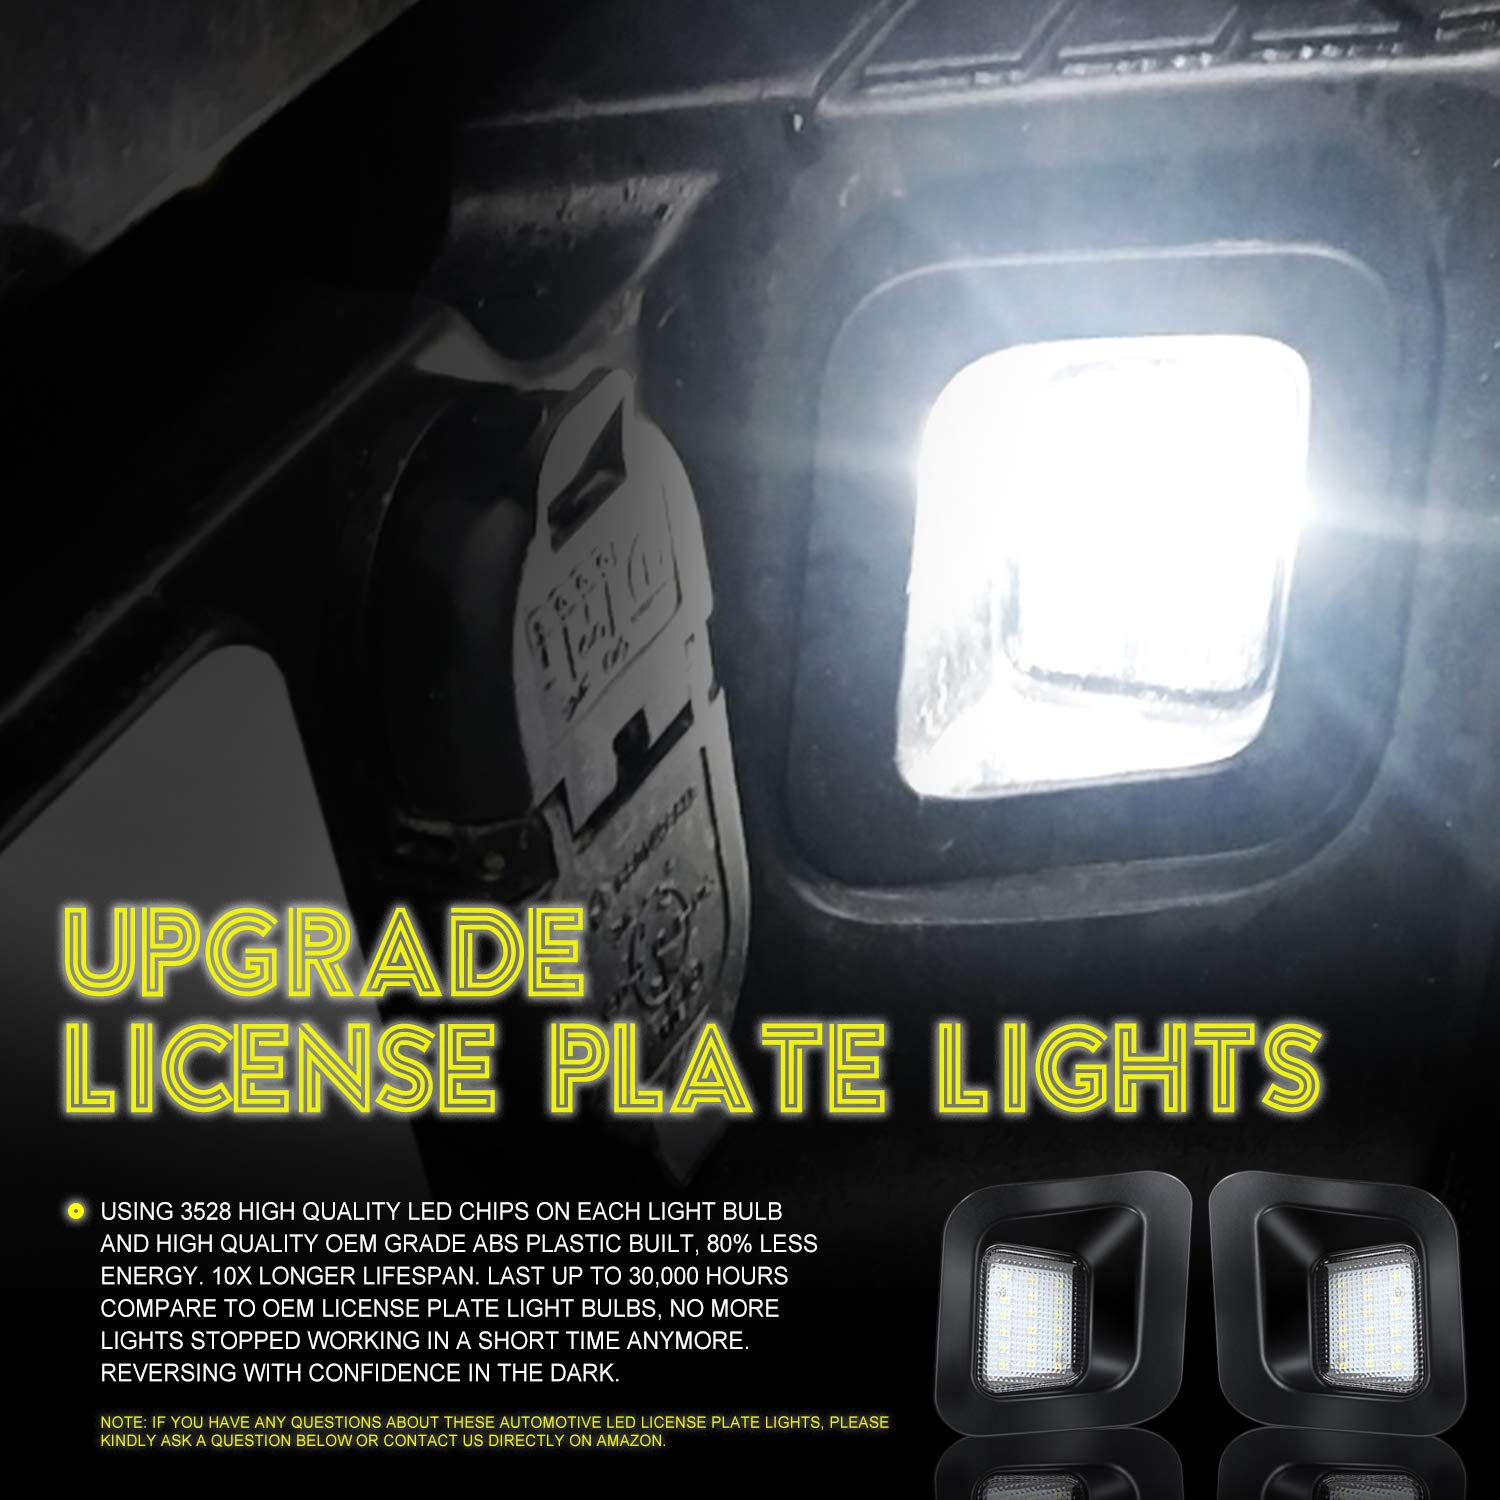 CAR ROVER Full LED License Plate Light Lamp Assembly Replacement for Ford F-150 F-250 F-350 F-450 F-550 Superduty Ranger Pickup Truck Explorer Bronco Excursion Expedition 6500K, 2 Pack